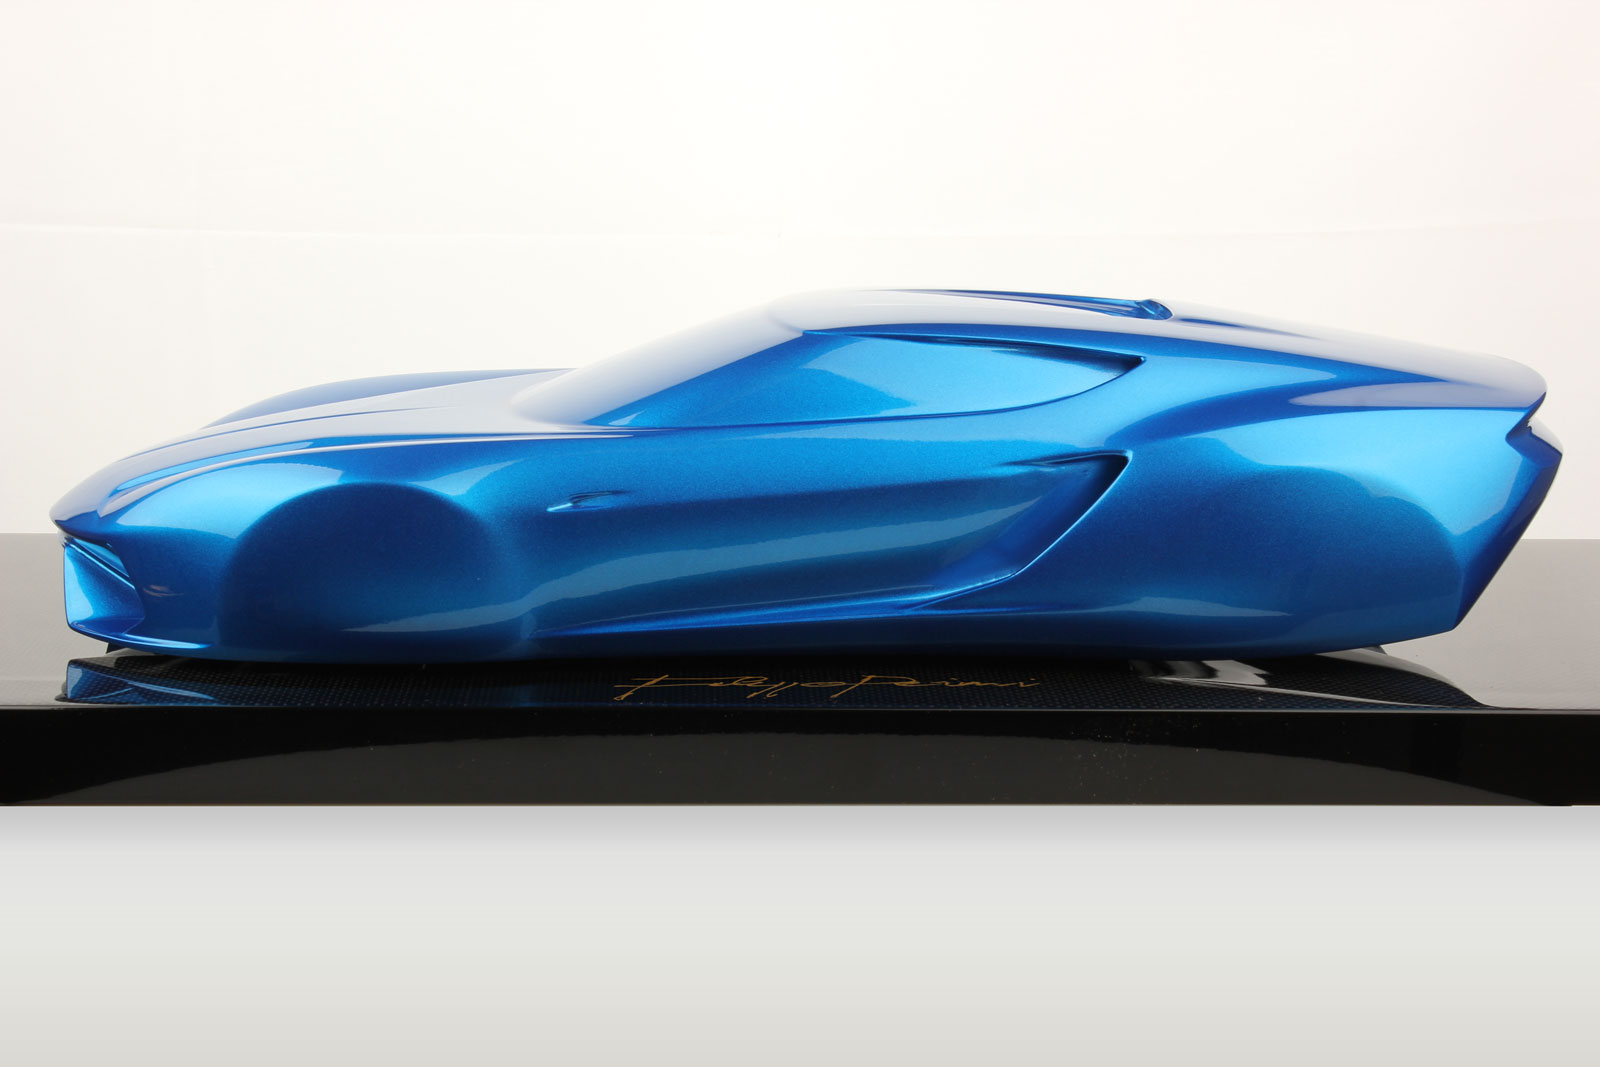 You Can Now Buy The Lamborghini Asterion Sculpture Or